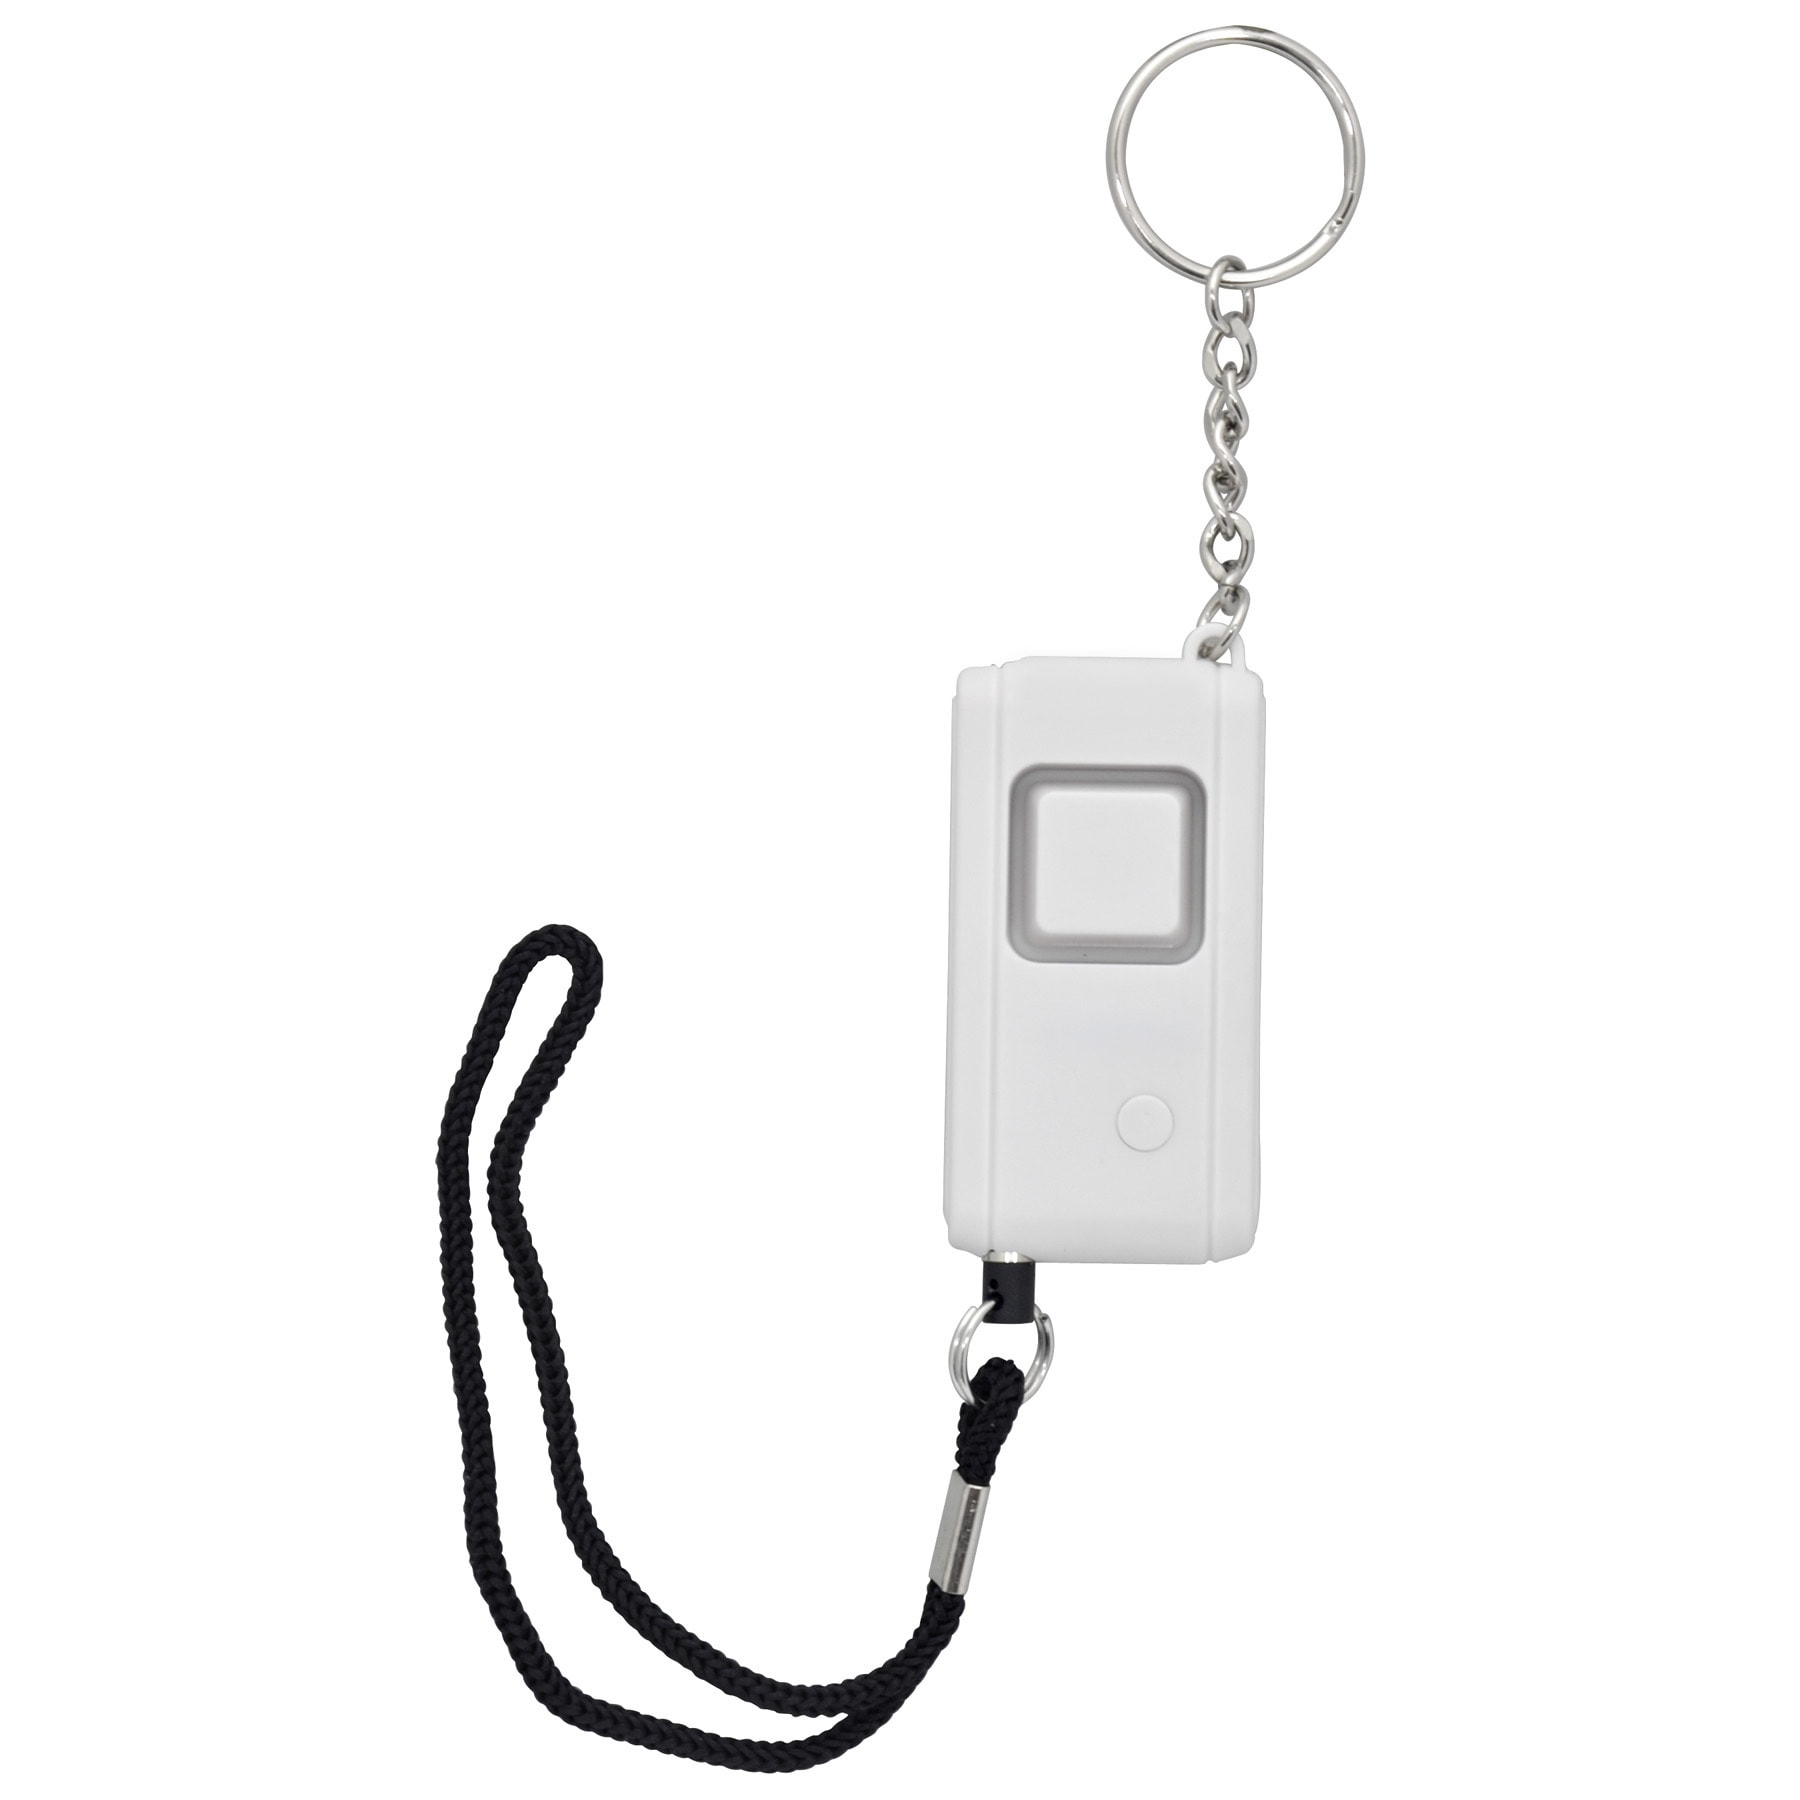 GE Smarthome Sh51208/gesecpa1 Personal Keychain Security ...